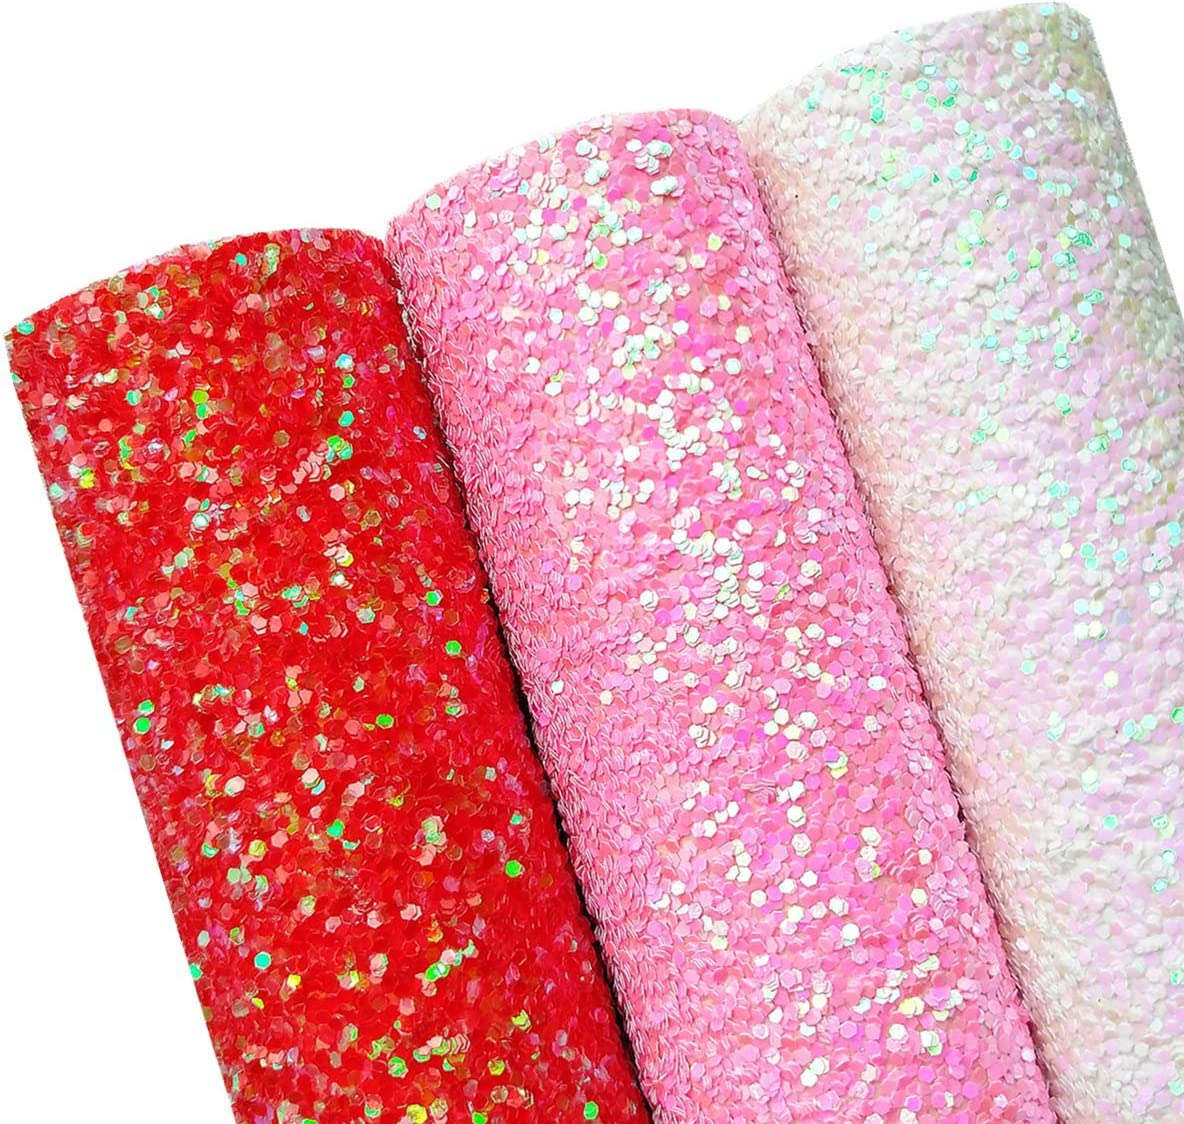 Candy Pink Glitter Material Soft Fine Sheet Bow Making